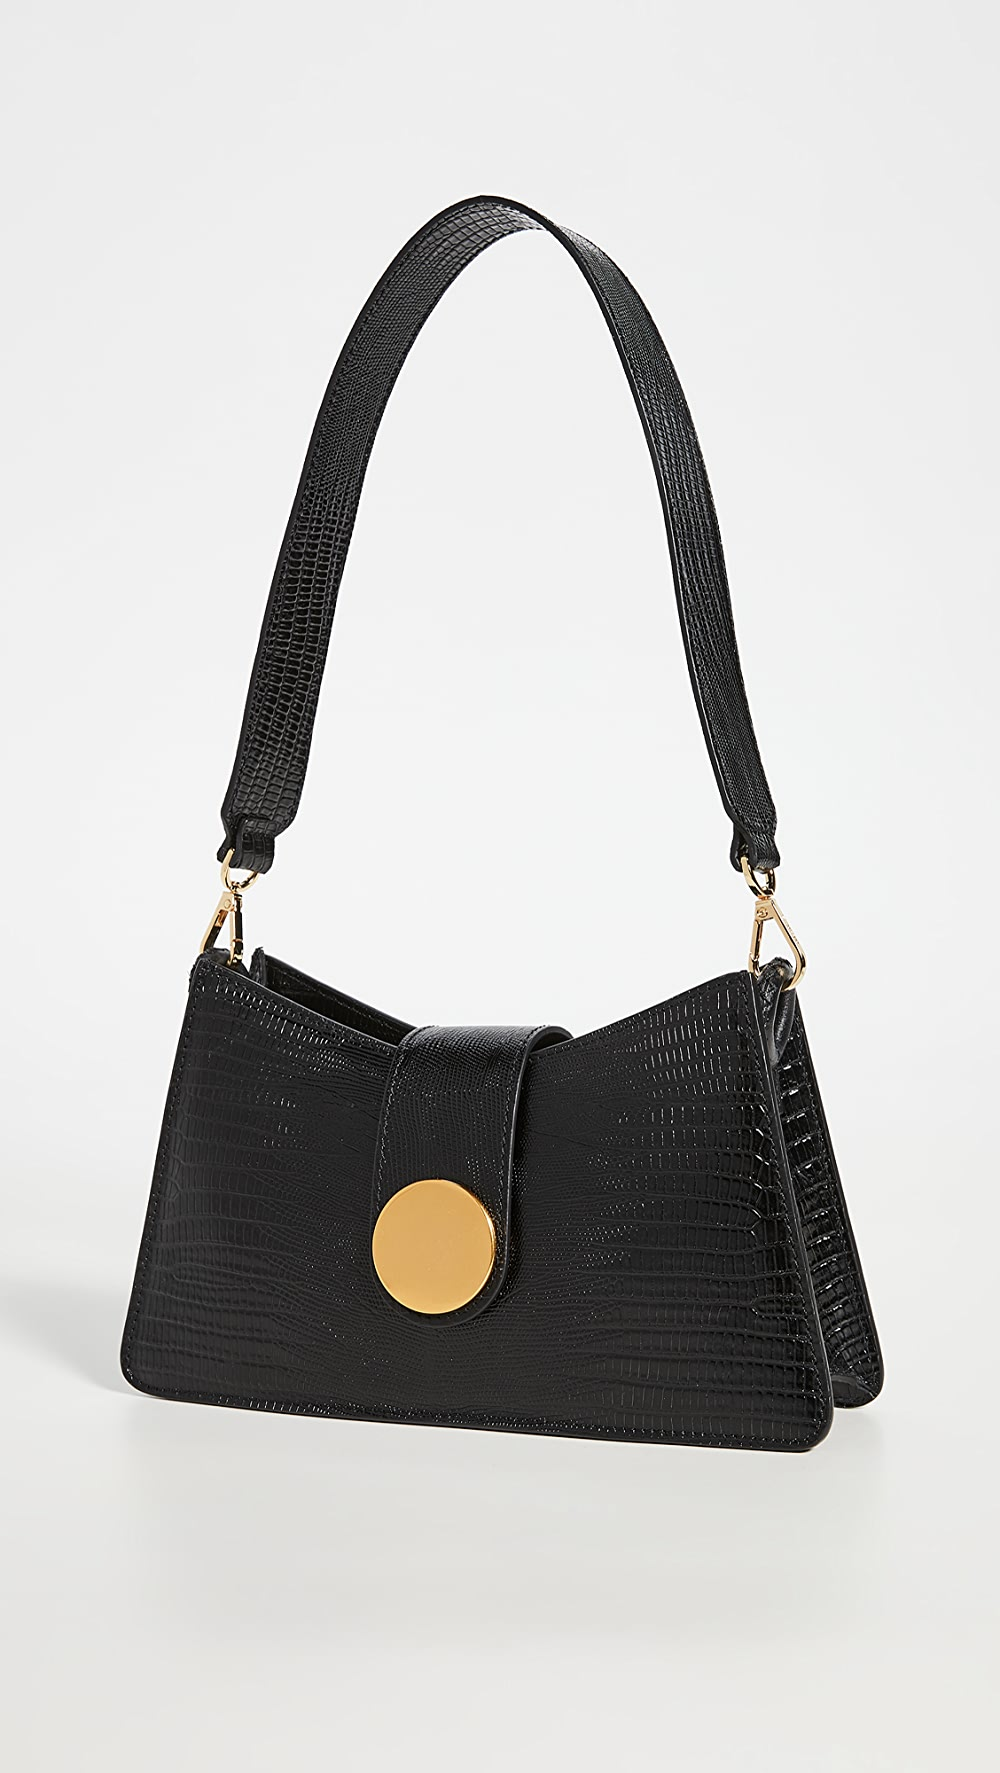 The Cheapest Price Elleme - Embossed Baguette Bag Dependable Performance